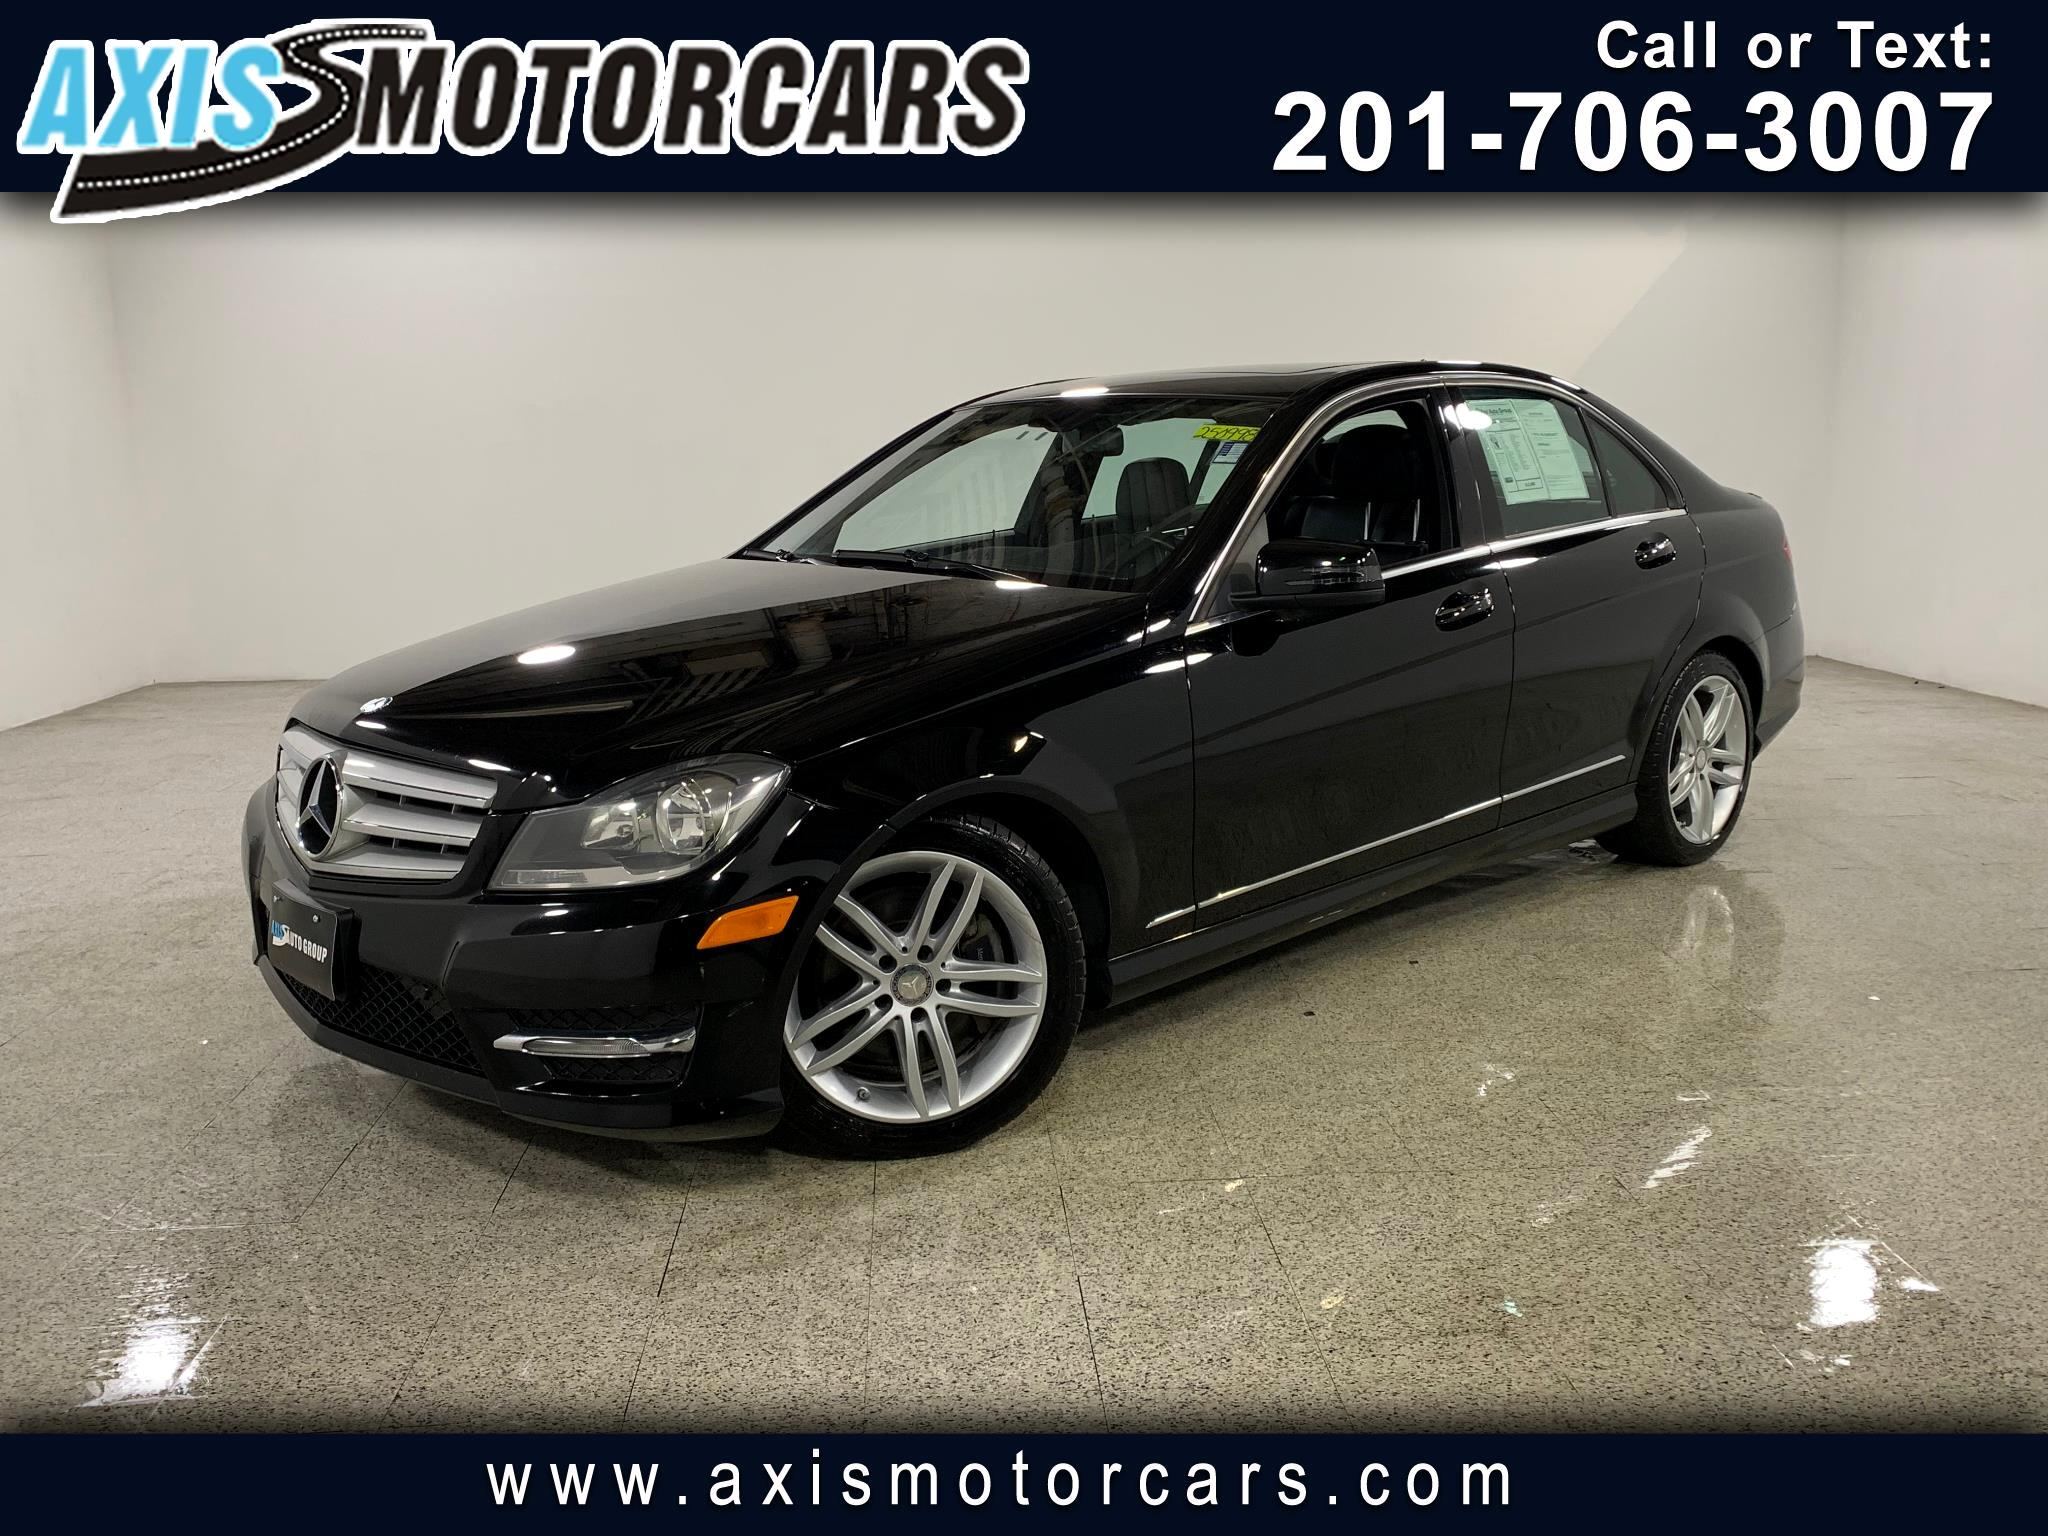 2013 Mercedes-Benz C300 w/Harman Kardon Sound System Navigation